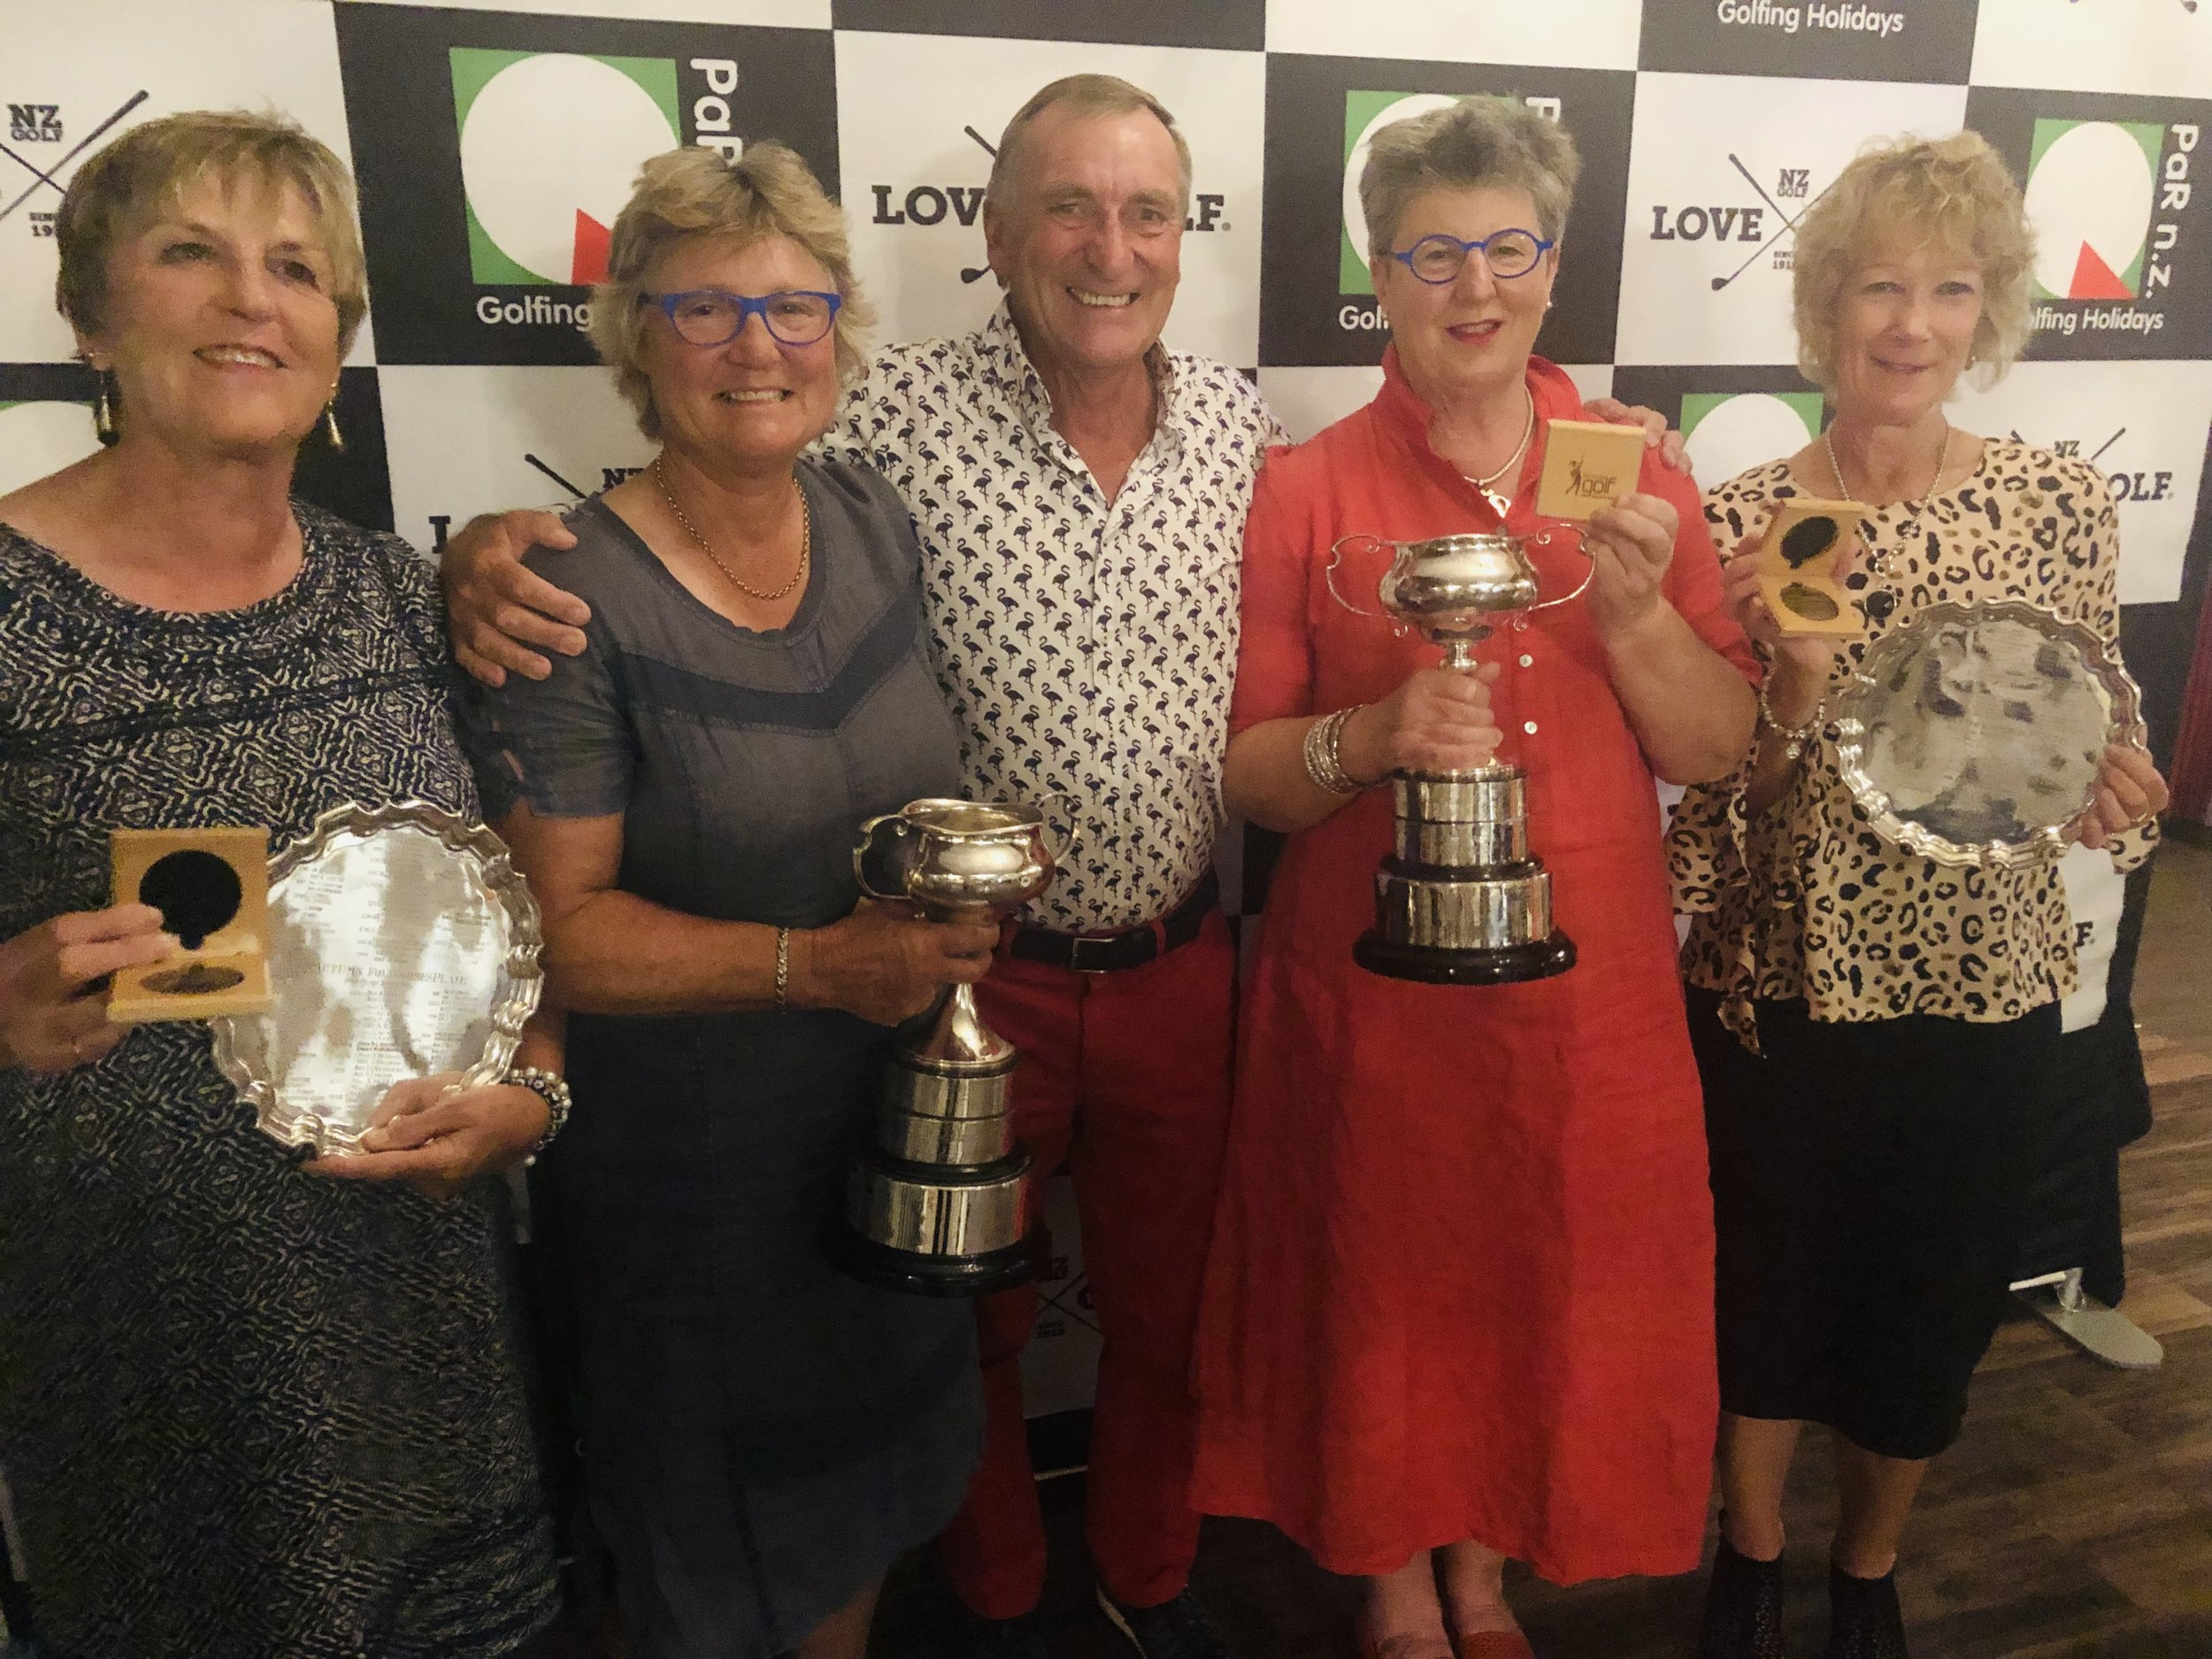 Photo from left Pam Johnston, Helen Green, Murray Armstrong (Paraparaumu Golf Chairman), Janet Myers, Heather Gifkins